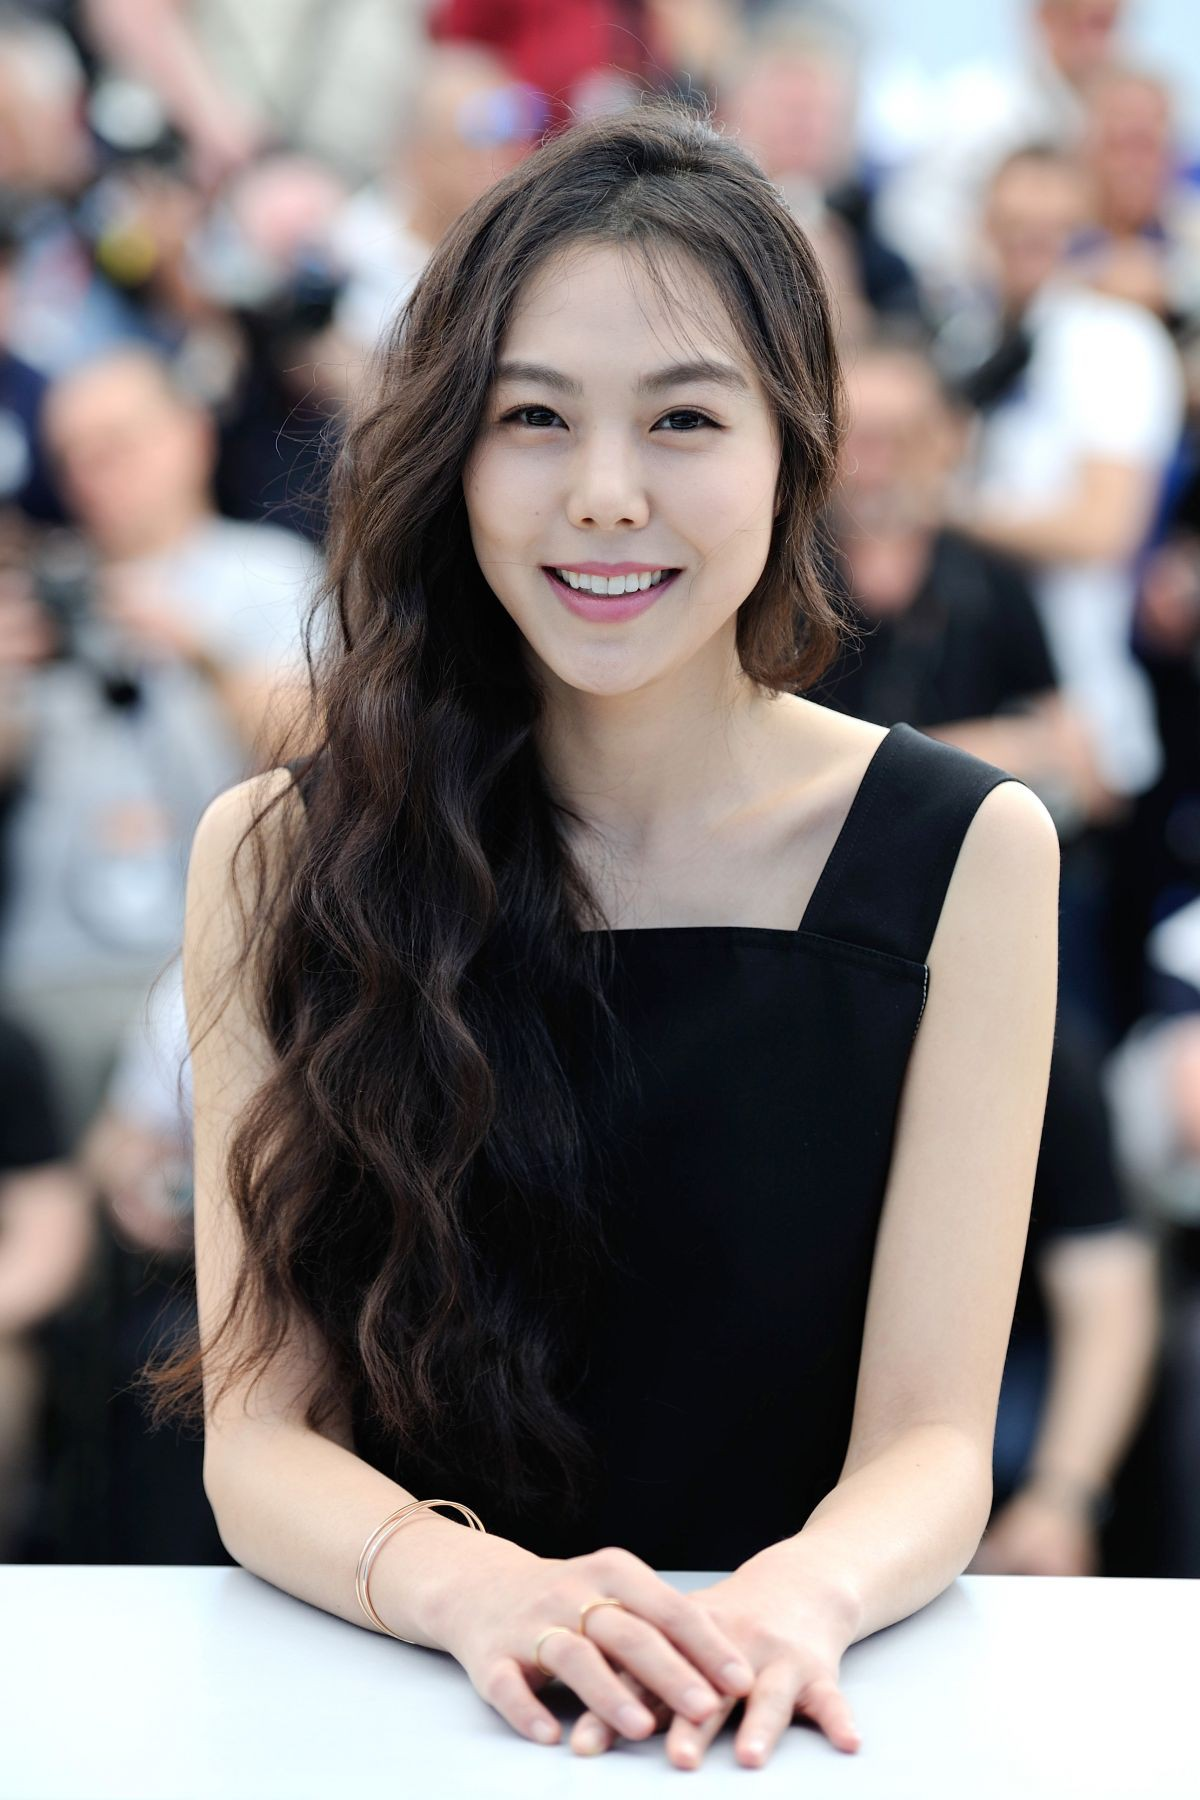 kim-minhee-at-claire-s-camera-photocall-at-2017-cannes-film-festival-05-21-2017_5